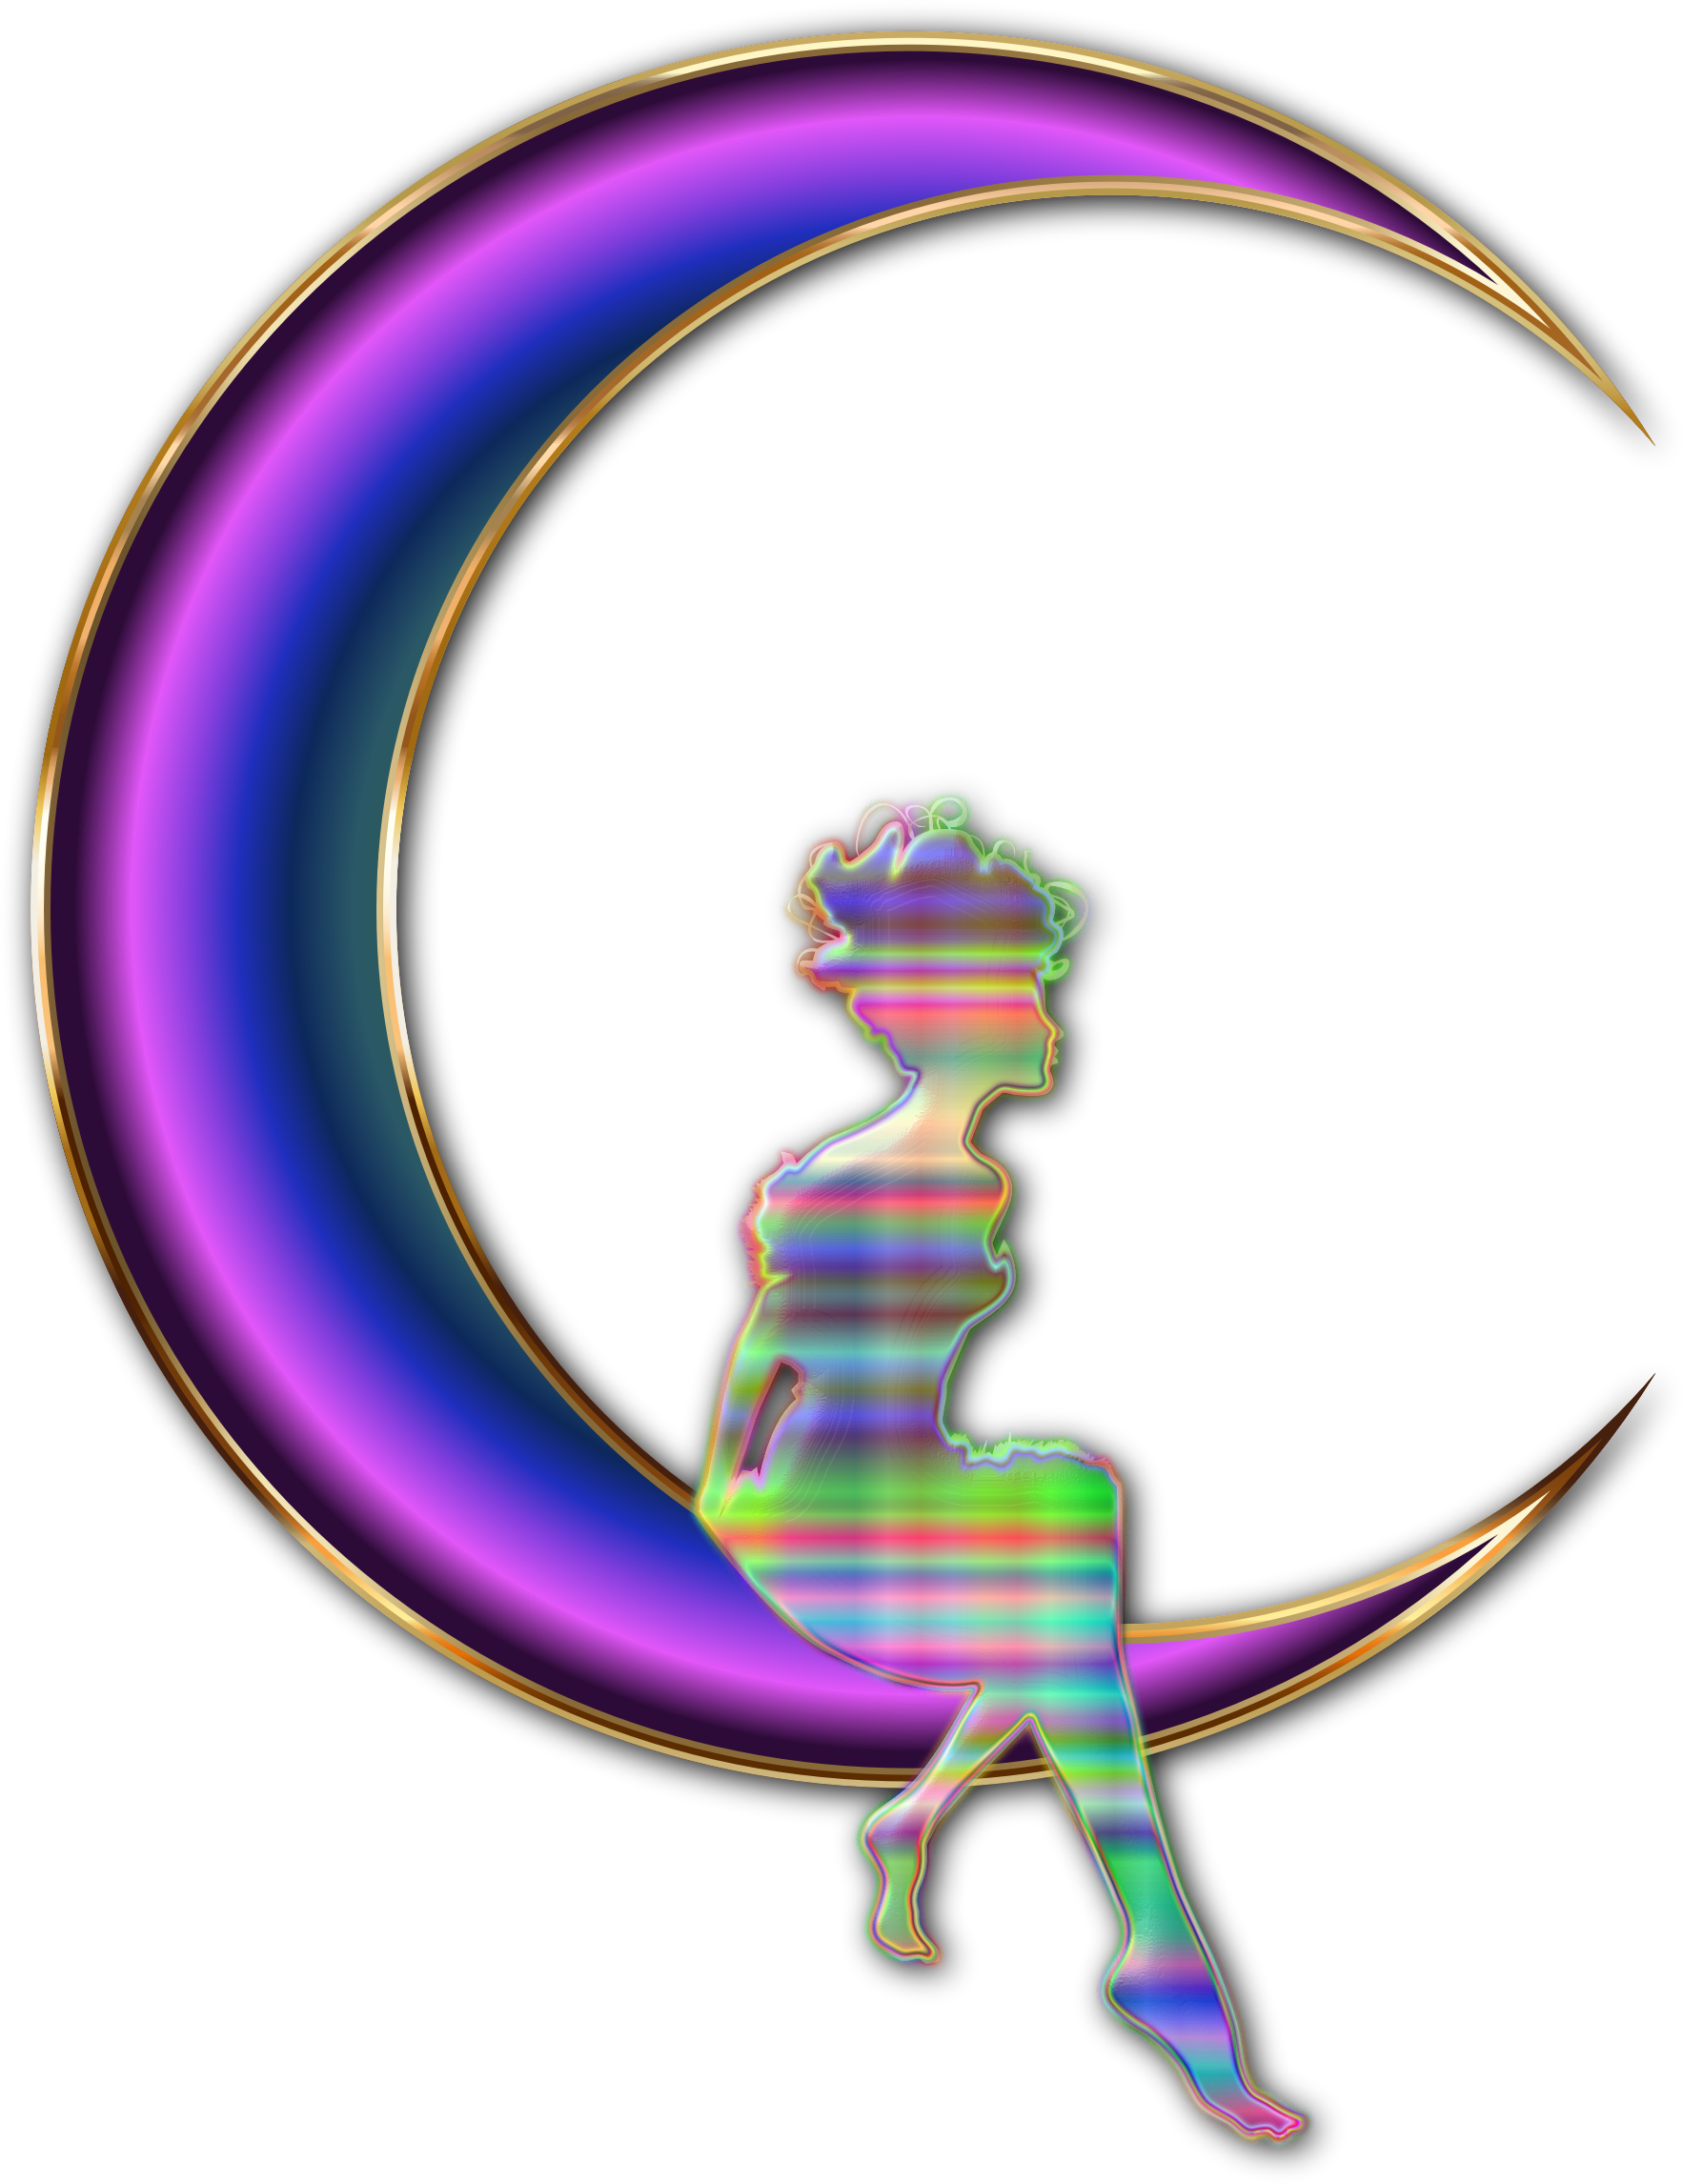 Chromatic Fairy Sitting On Crescent Moon Enhanced No Background Plus Drop Shadow by GDJ